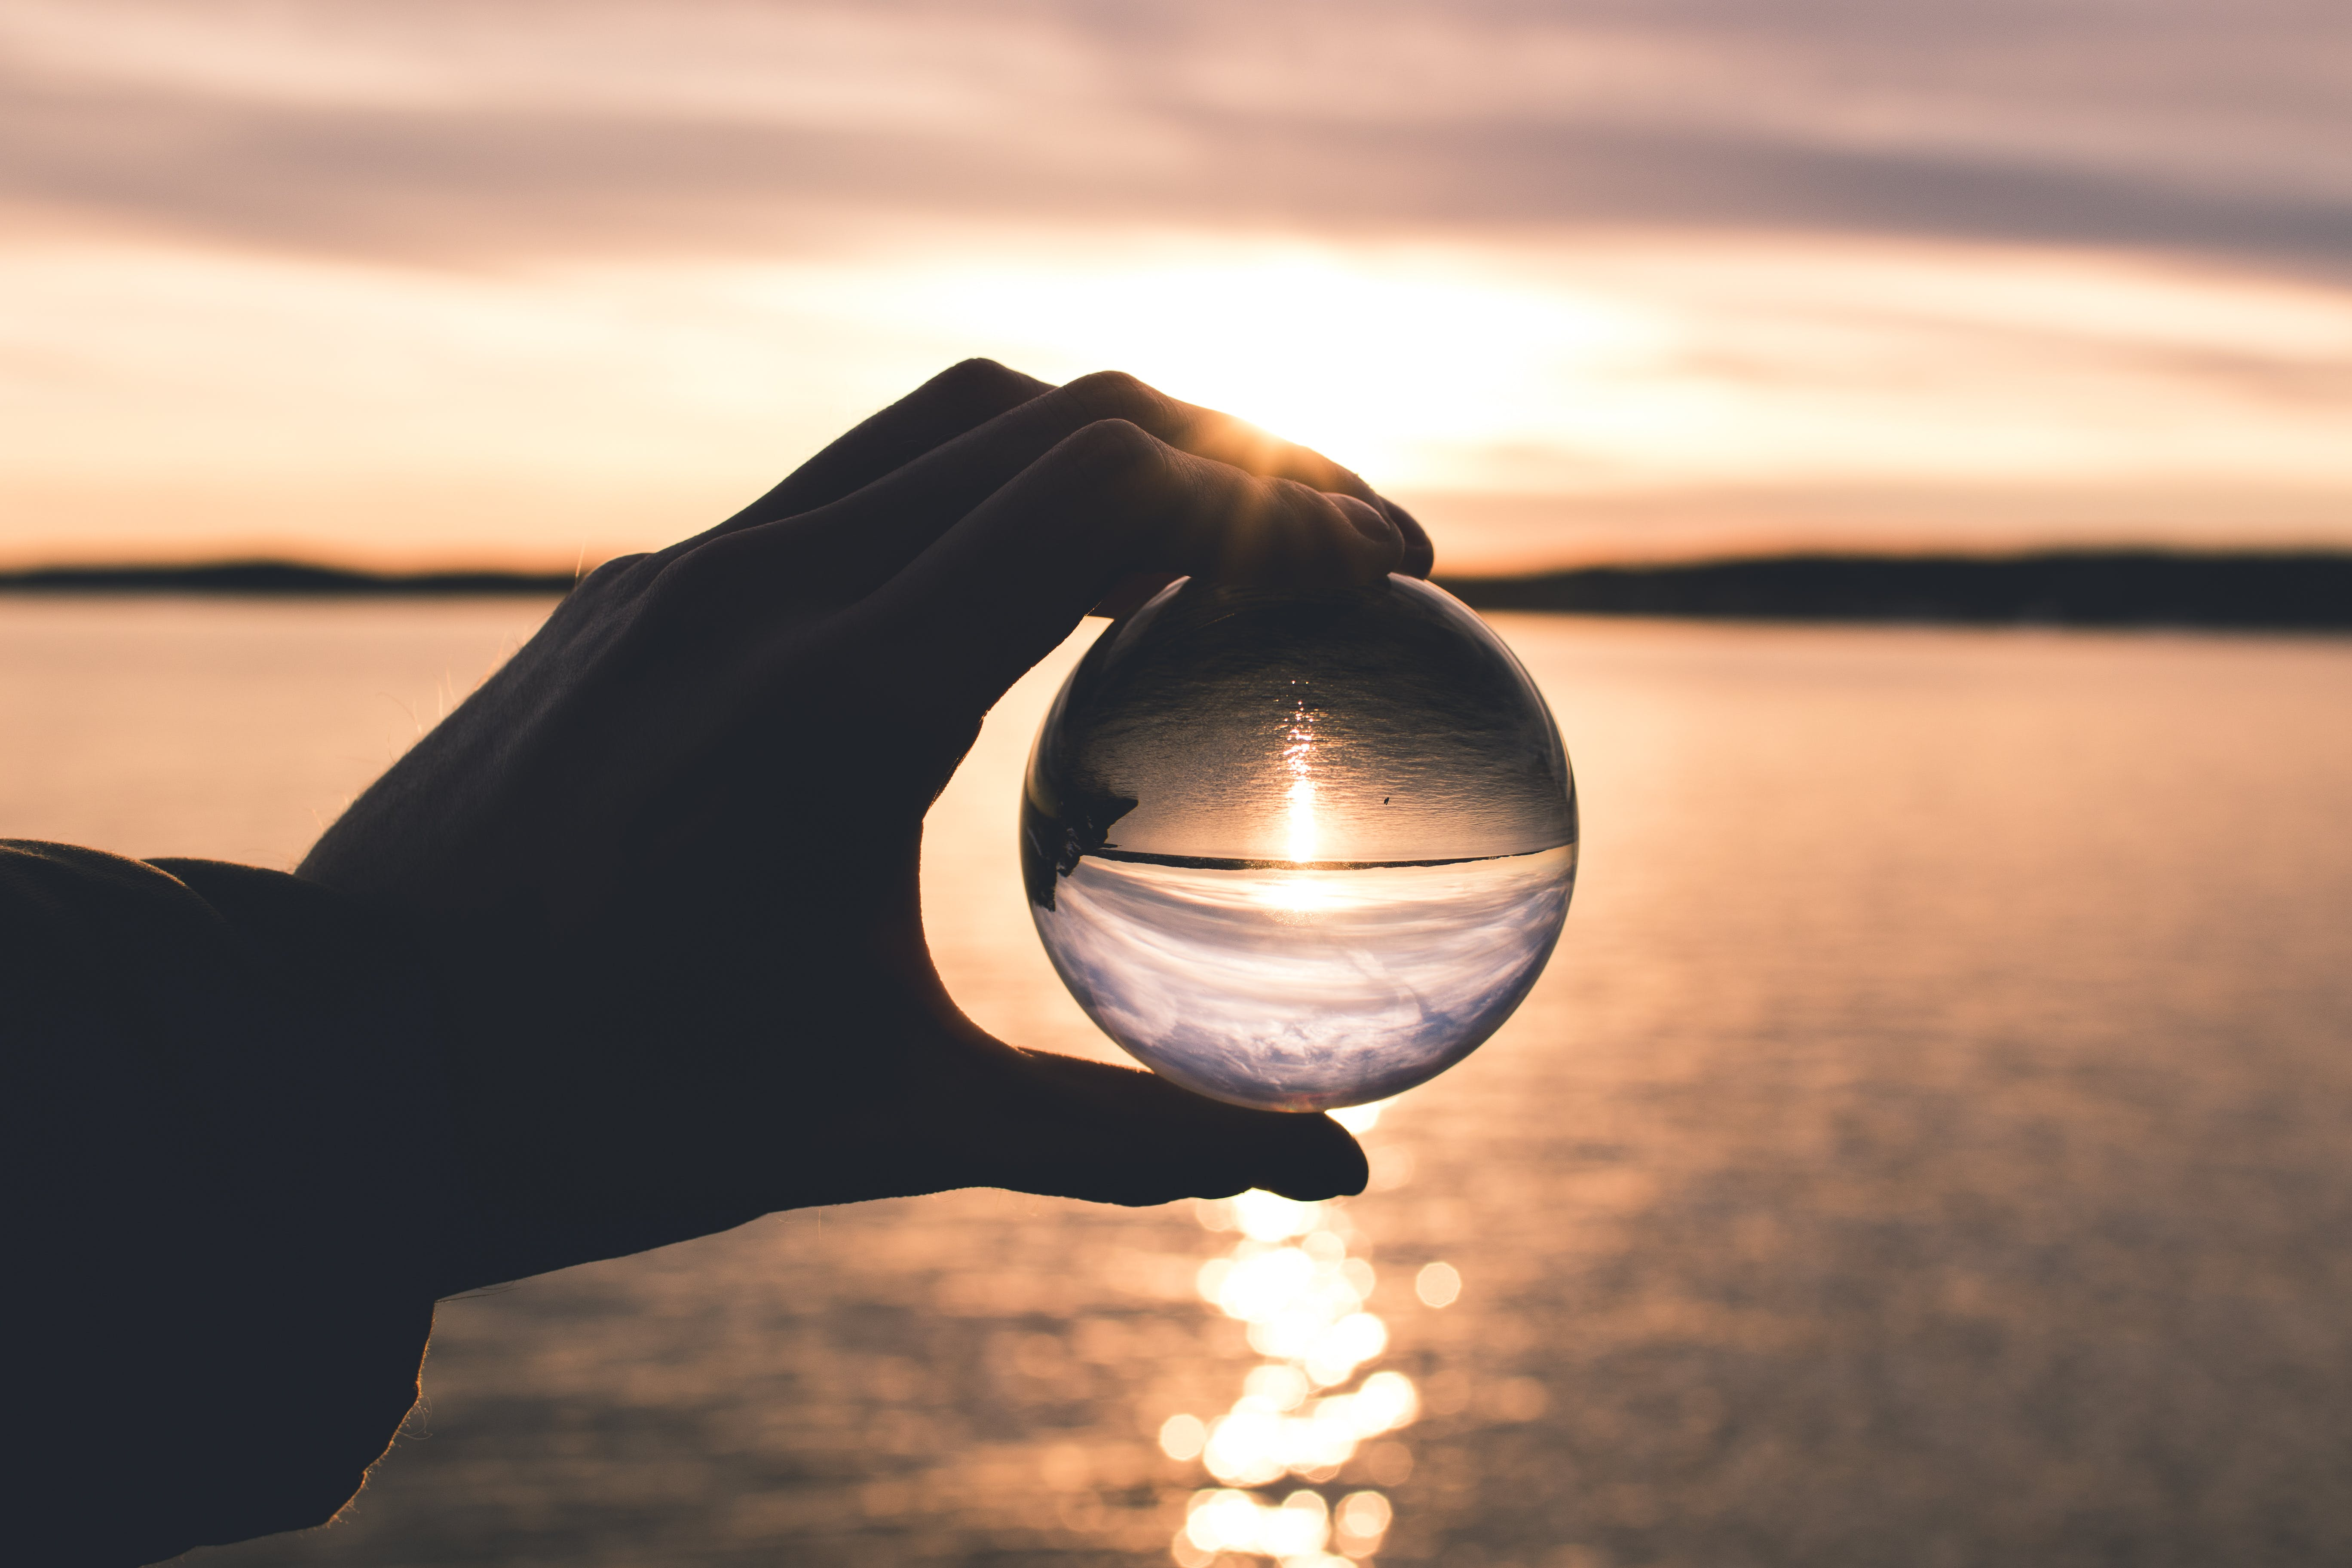 Photo Displays Person Holding Ball With Reflection of Horizon